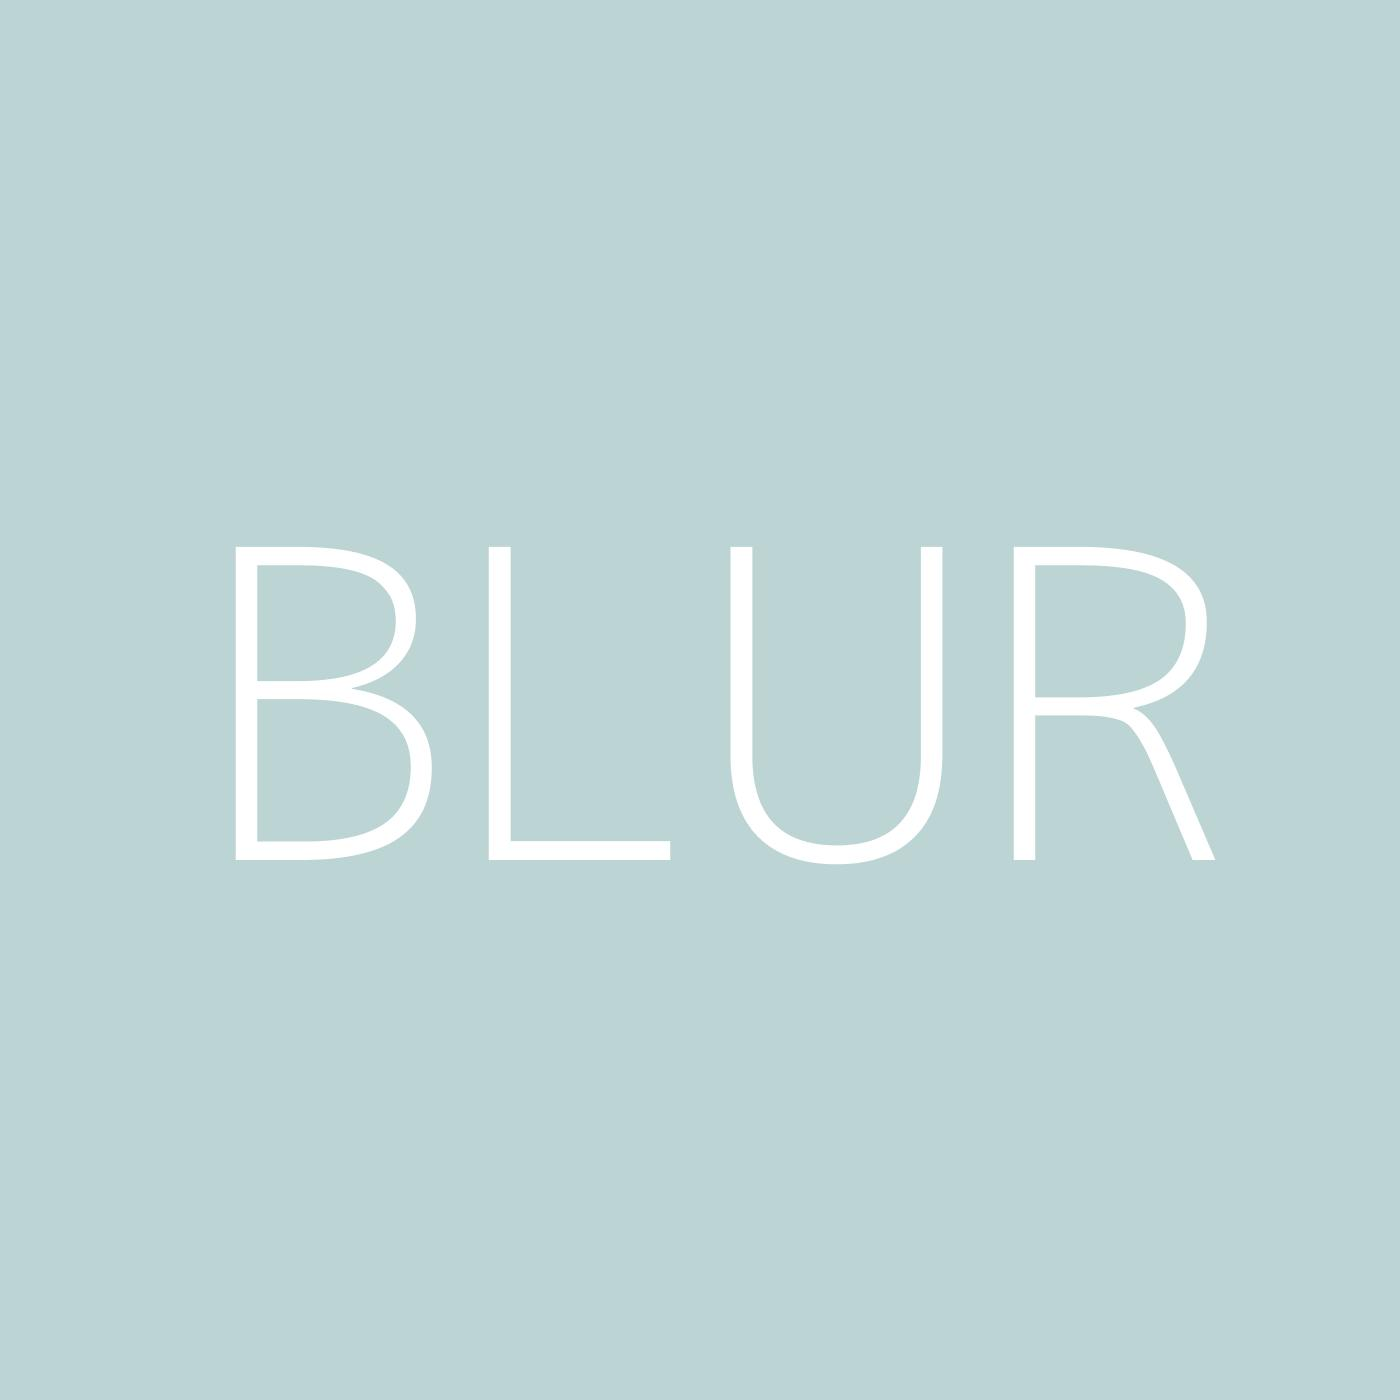 Blur Playlist Artwork